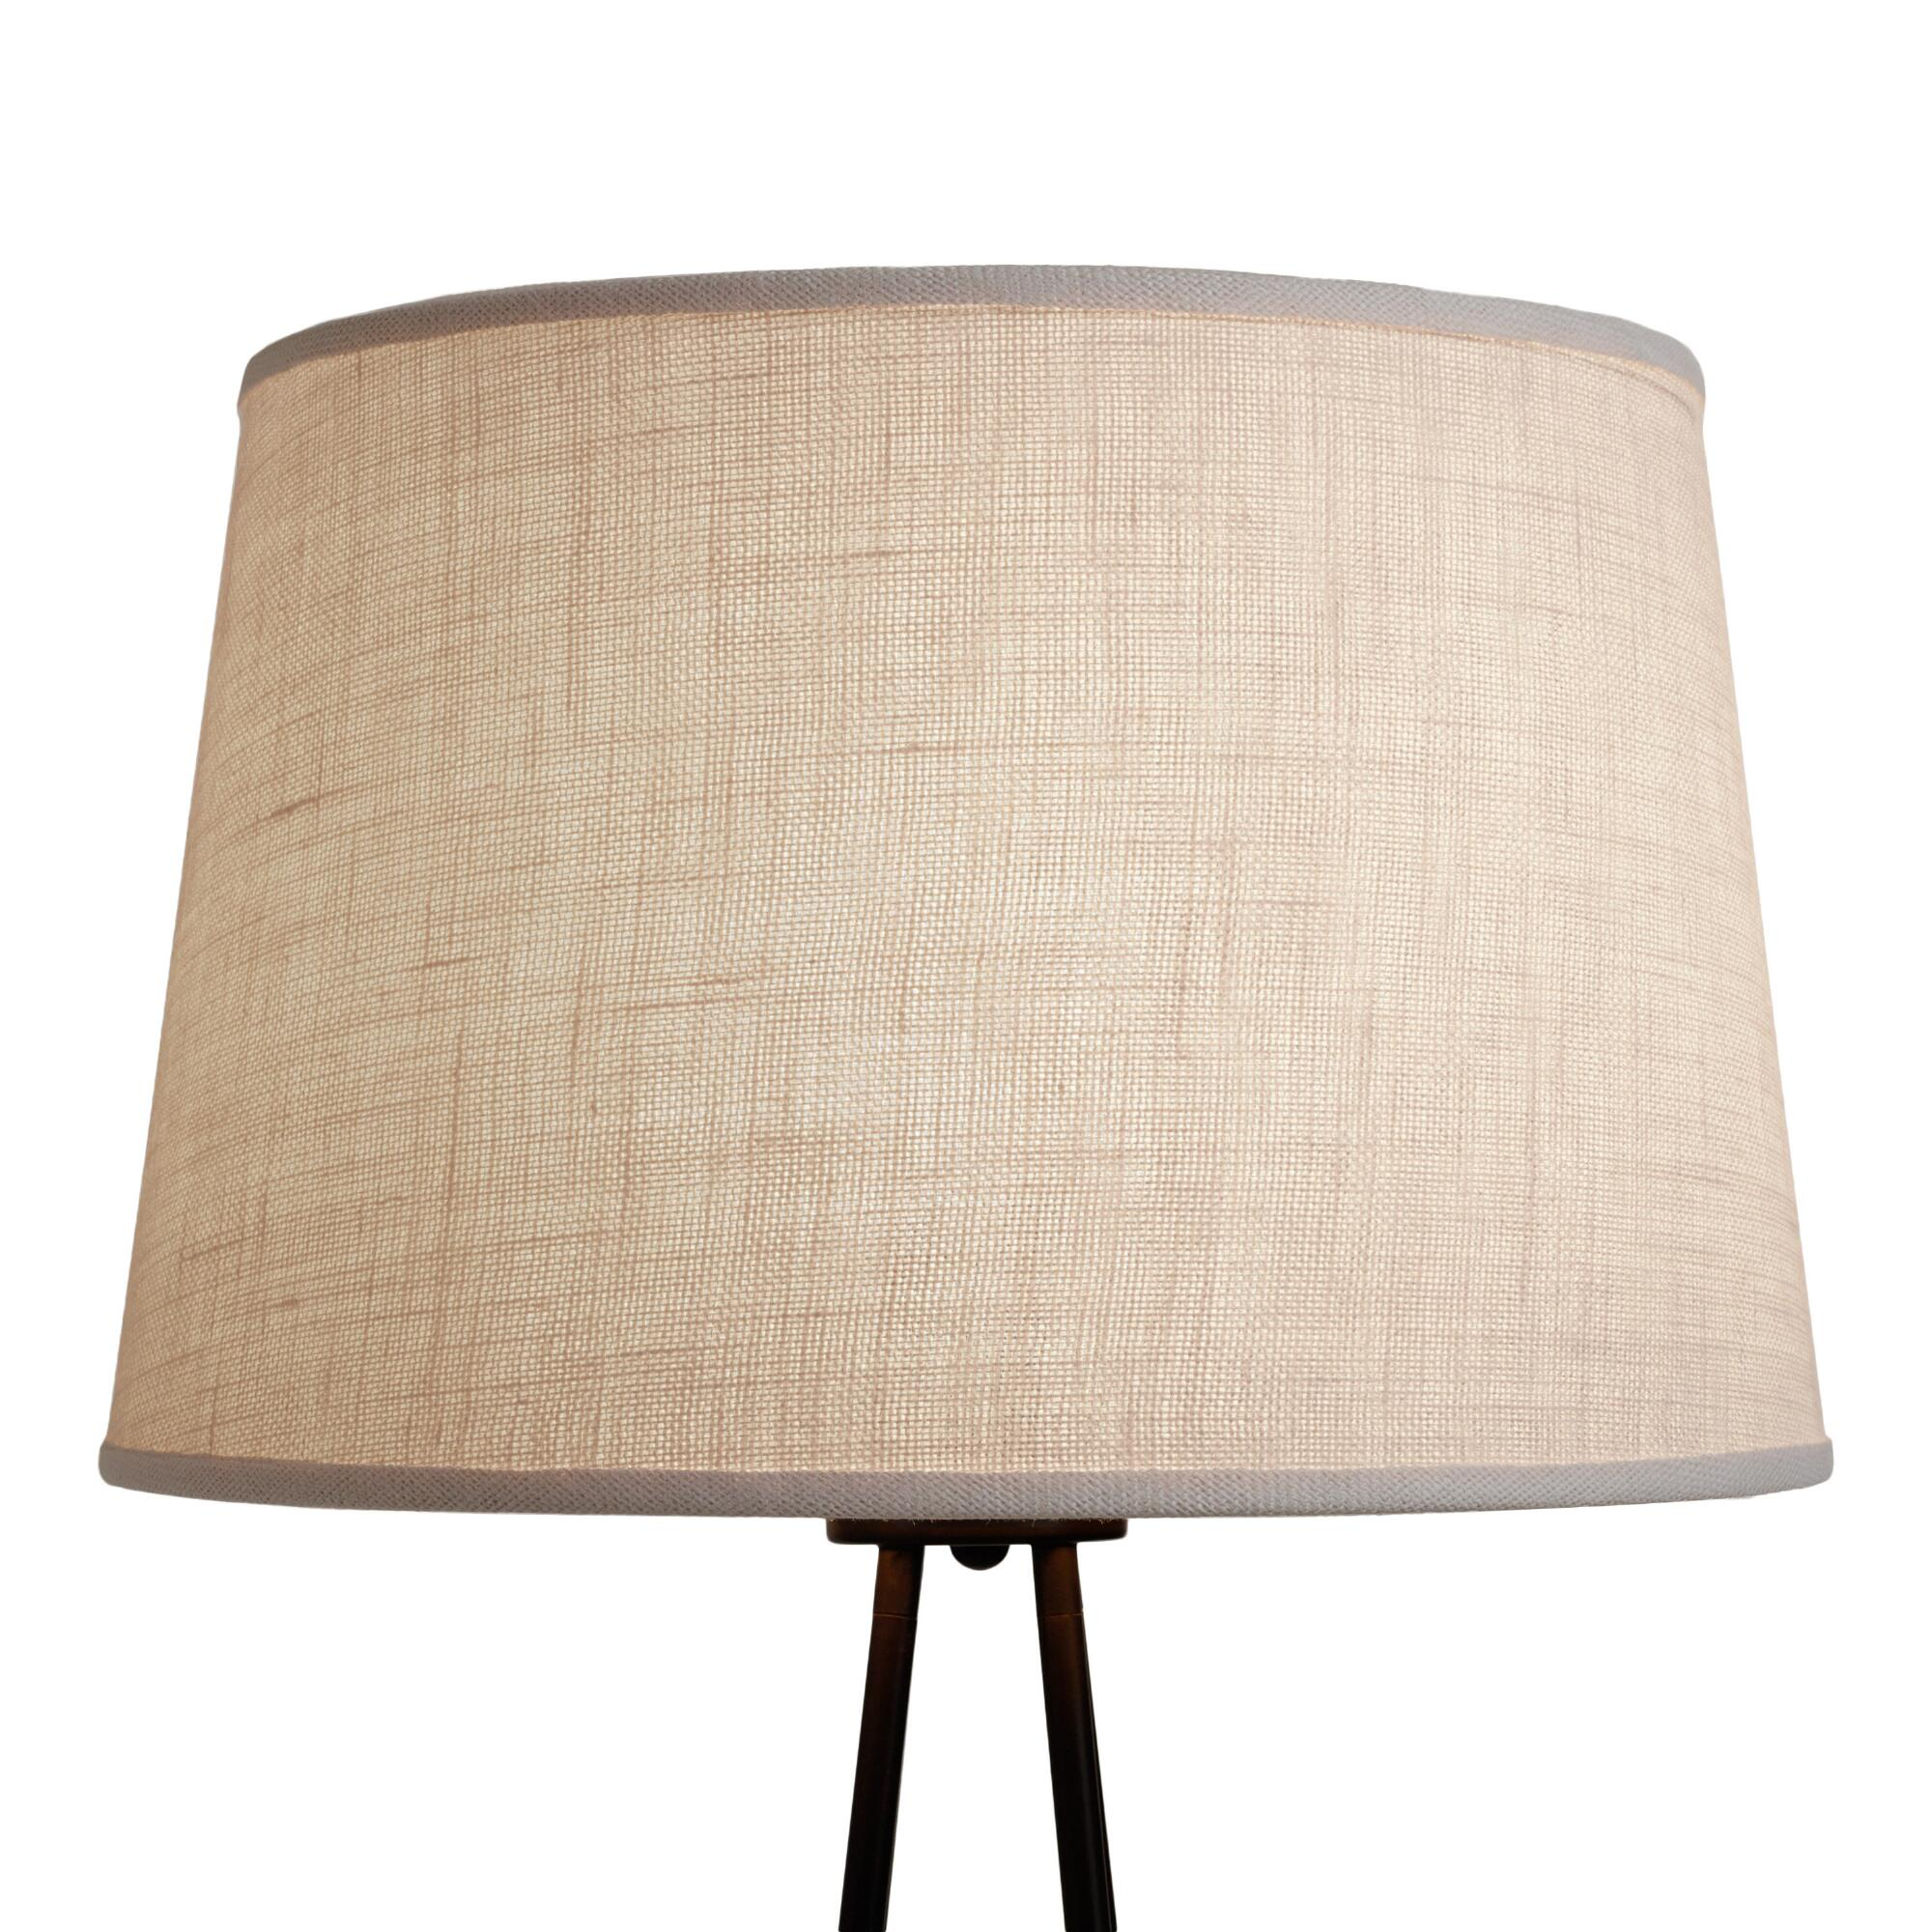 Marshmallow White Burlap Floor Lamp Shade - Natural Fiber by World Market